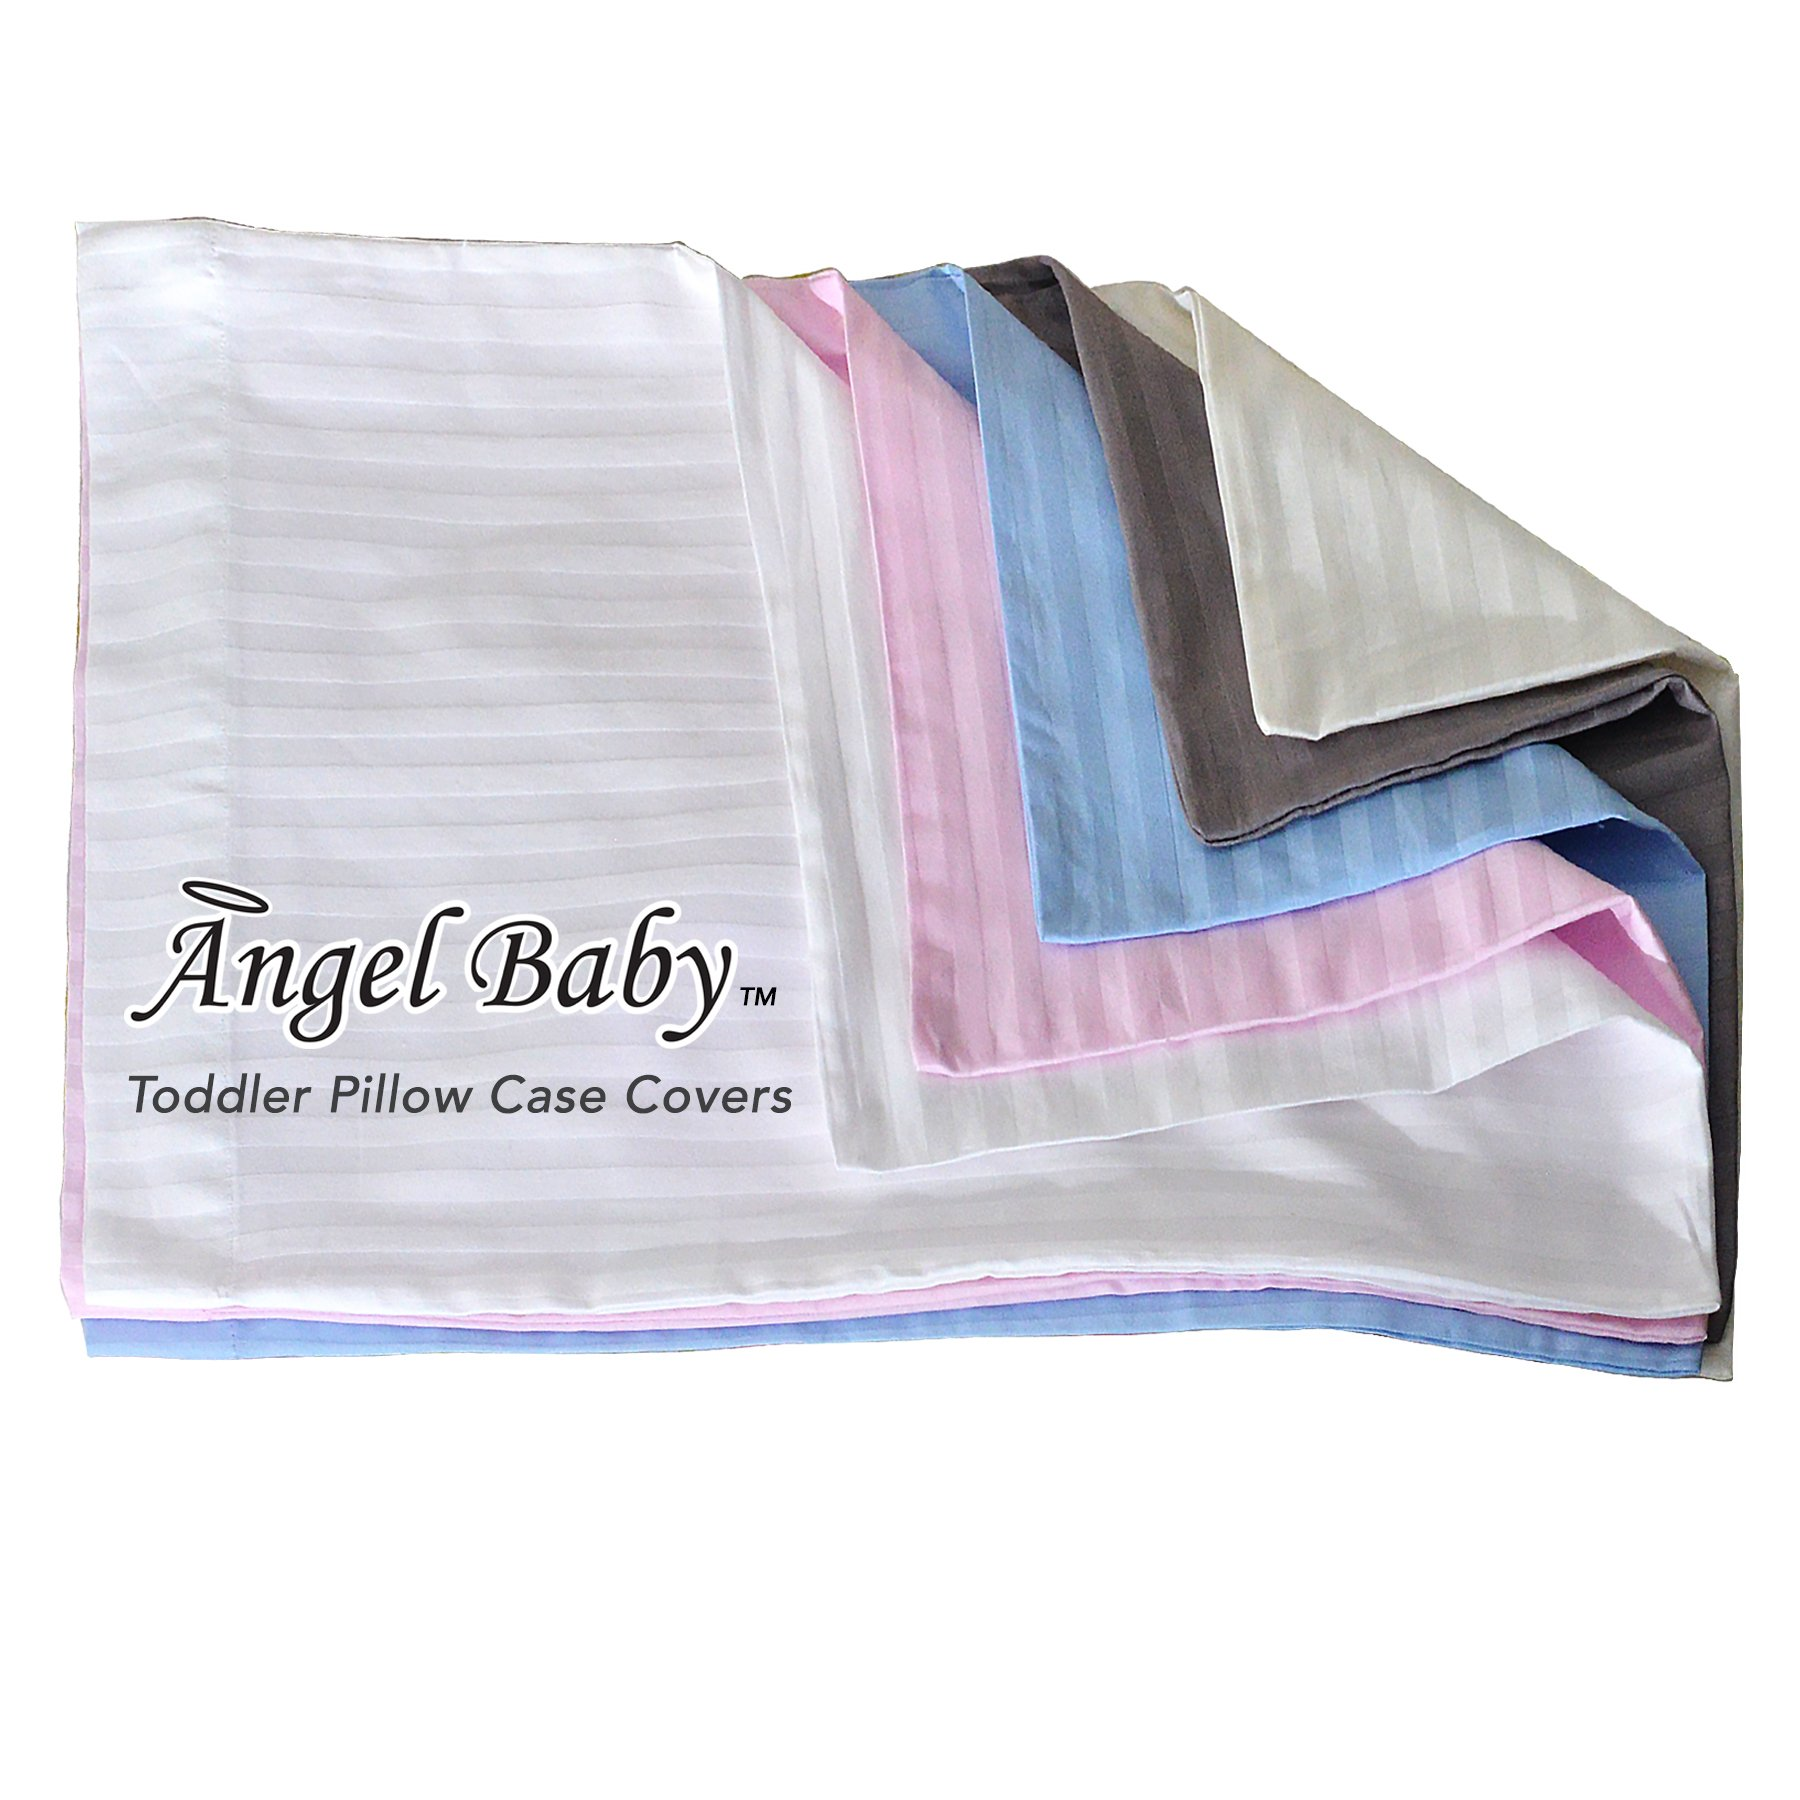 Angel Baby Toddler Pillow Case Cover - GREY, 100% NATURAL Cotton Percale, 400 Thread Count Sateen Weave, Machine Washable, Tumble Dry - for Kids Bedding - (14'' x 20.5'')